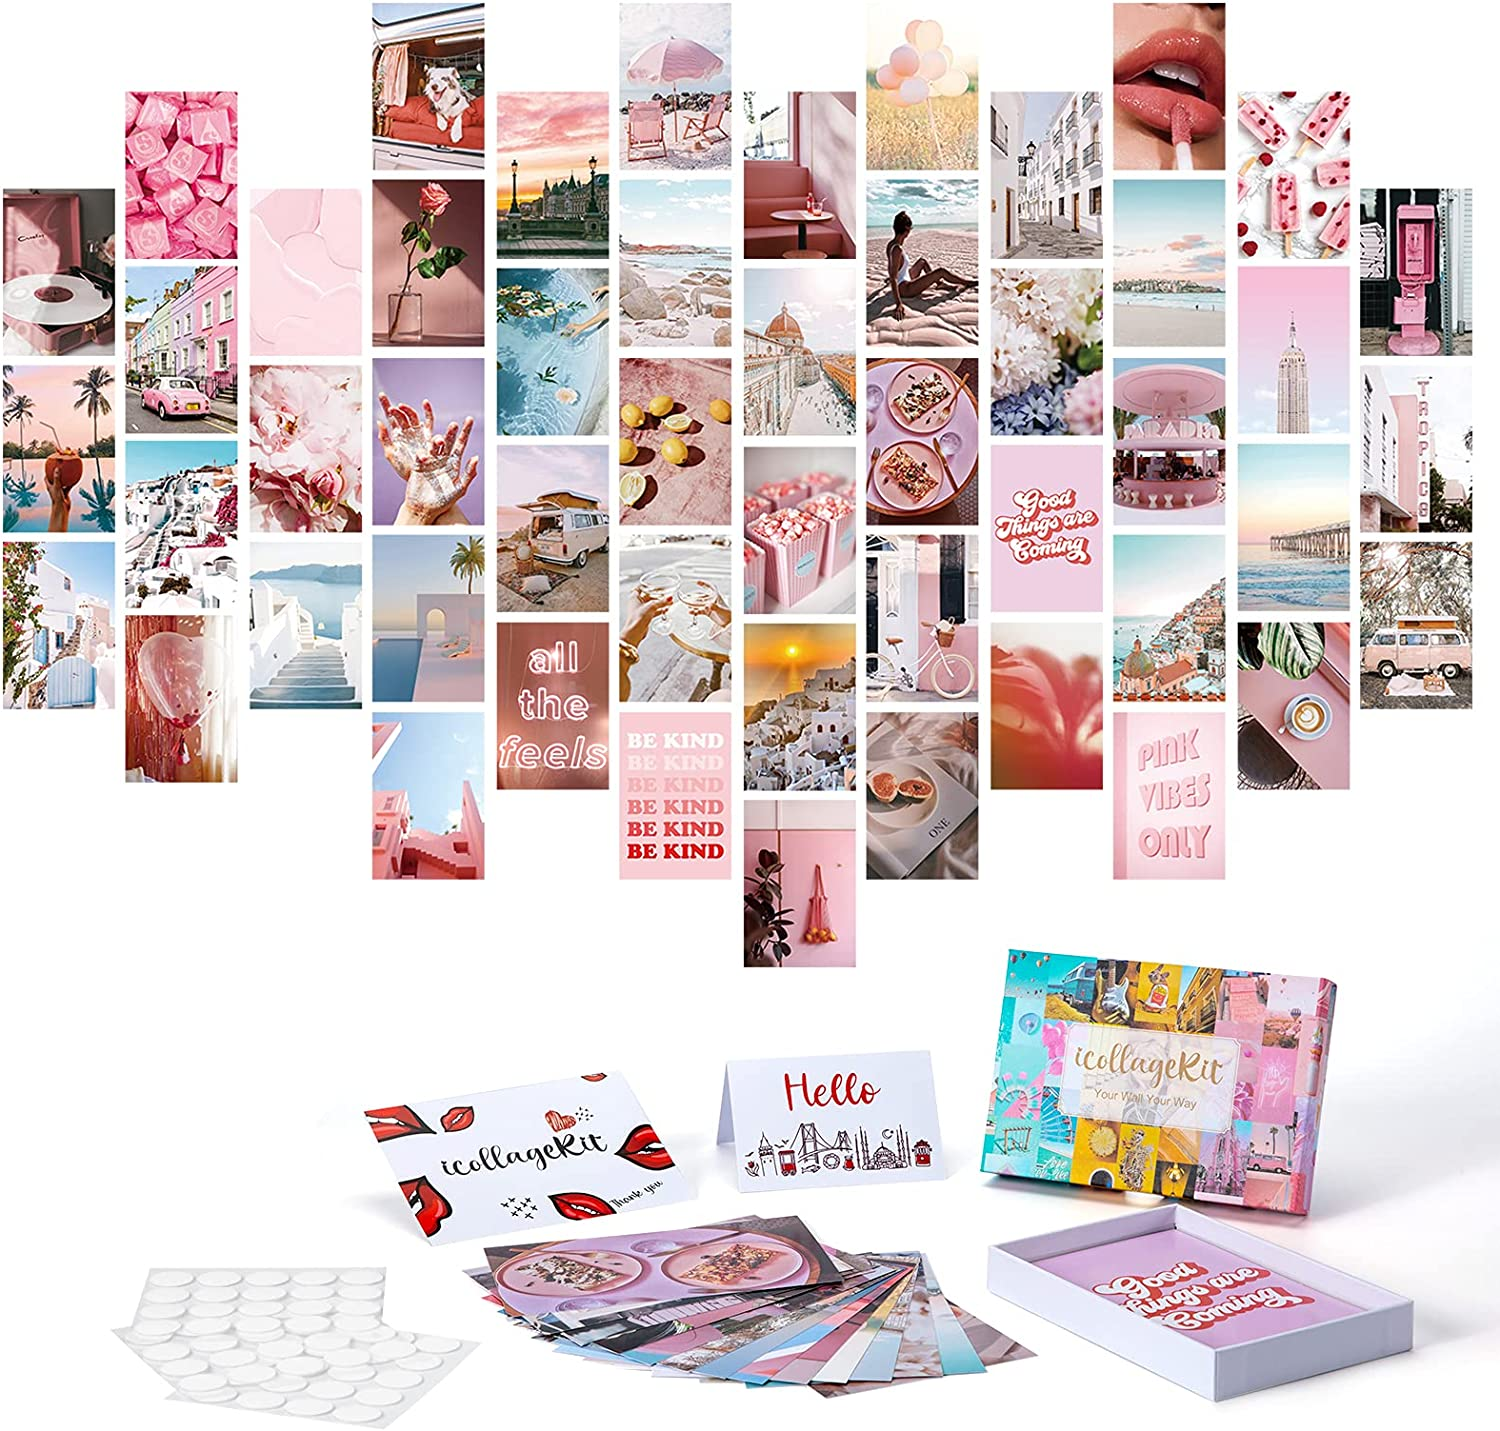 ONE WALL Photo Collage Kit for Wall Aesthetic Room Decor, Pink Aesthetic Pictures for Wall Collage, 4x6 inch Photo Prints VSCO Poster for Bedroom, Wall Art Print Dorm Wall Decor for Teen Girls